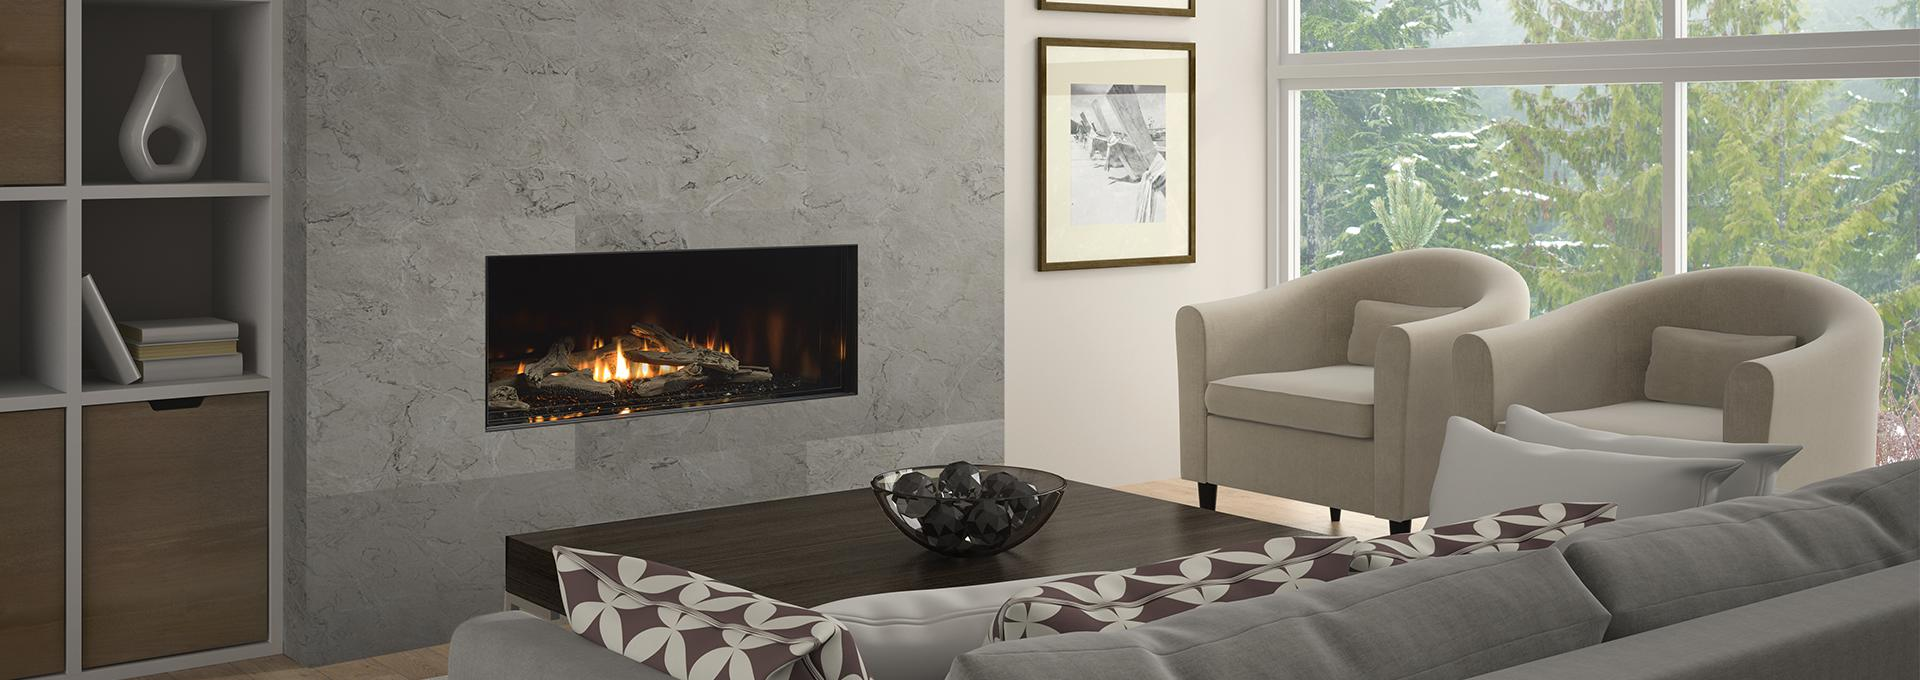 rocks fireplace stones renovace info full gas inserts fireplaces contemporary of modern size ventless toneru free standing